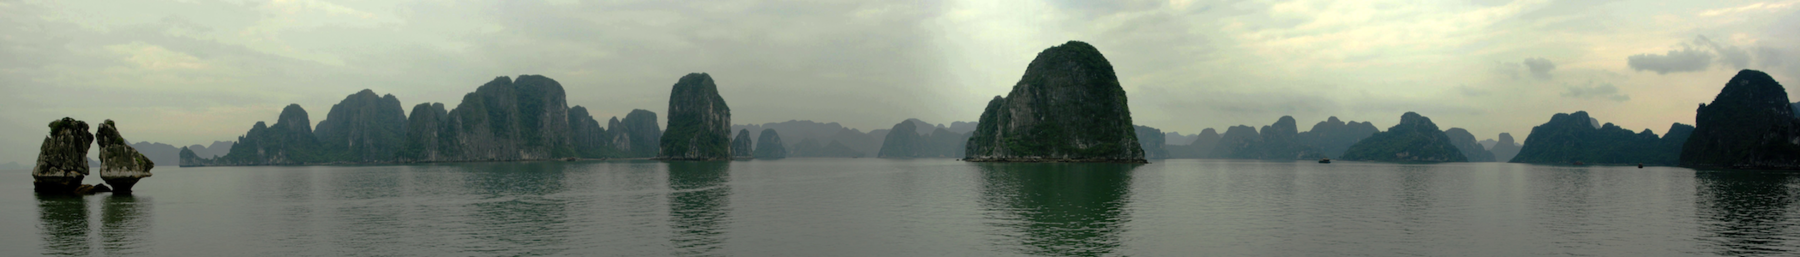 Ha Long bay (Vietnam) banner Islands in the bay.png